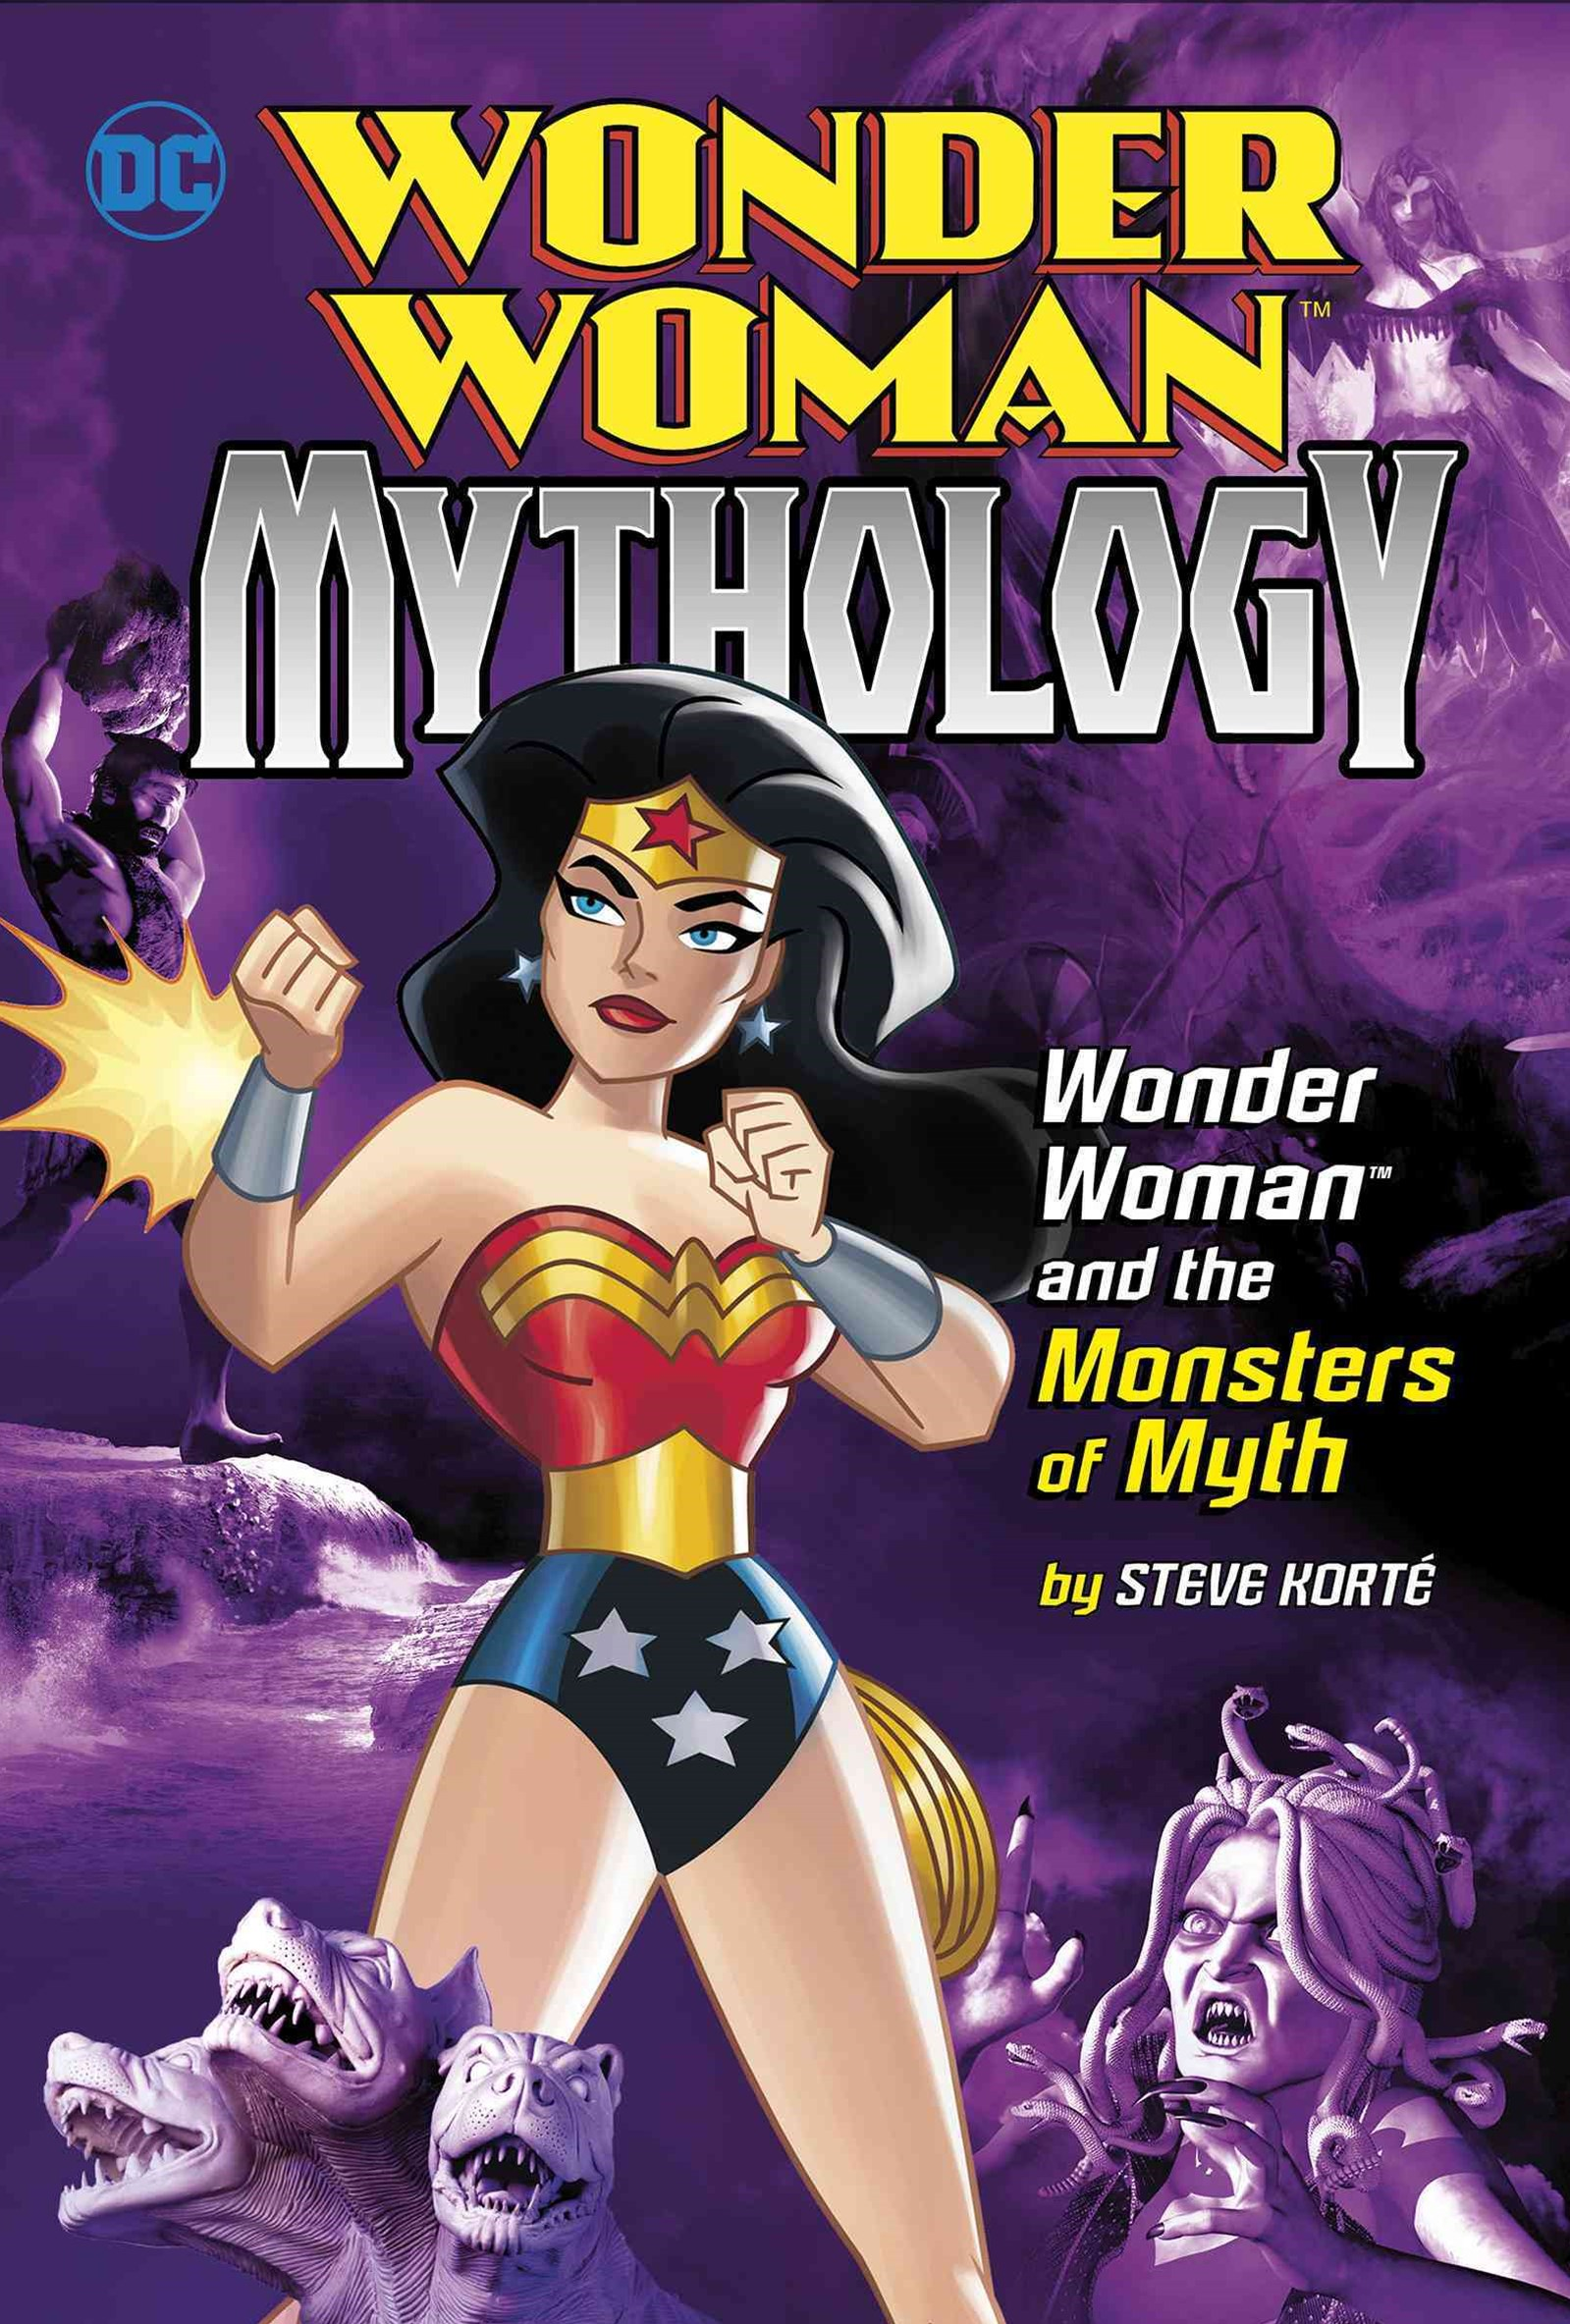 Wonder Woman Mythology: Wonder Woman and the Monsters of Myth